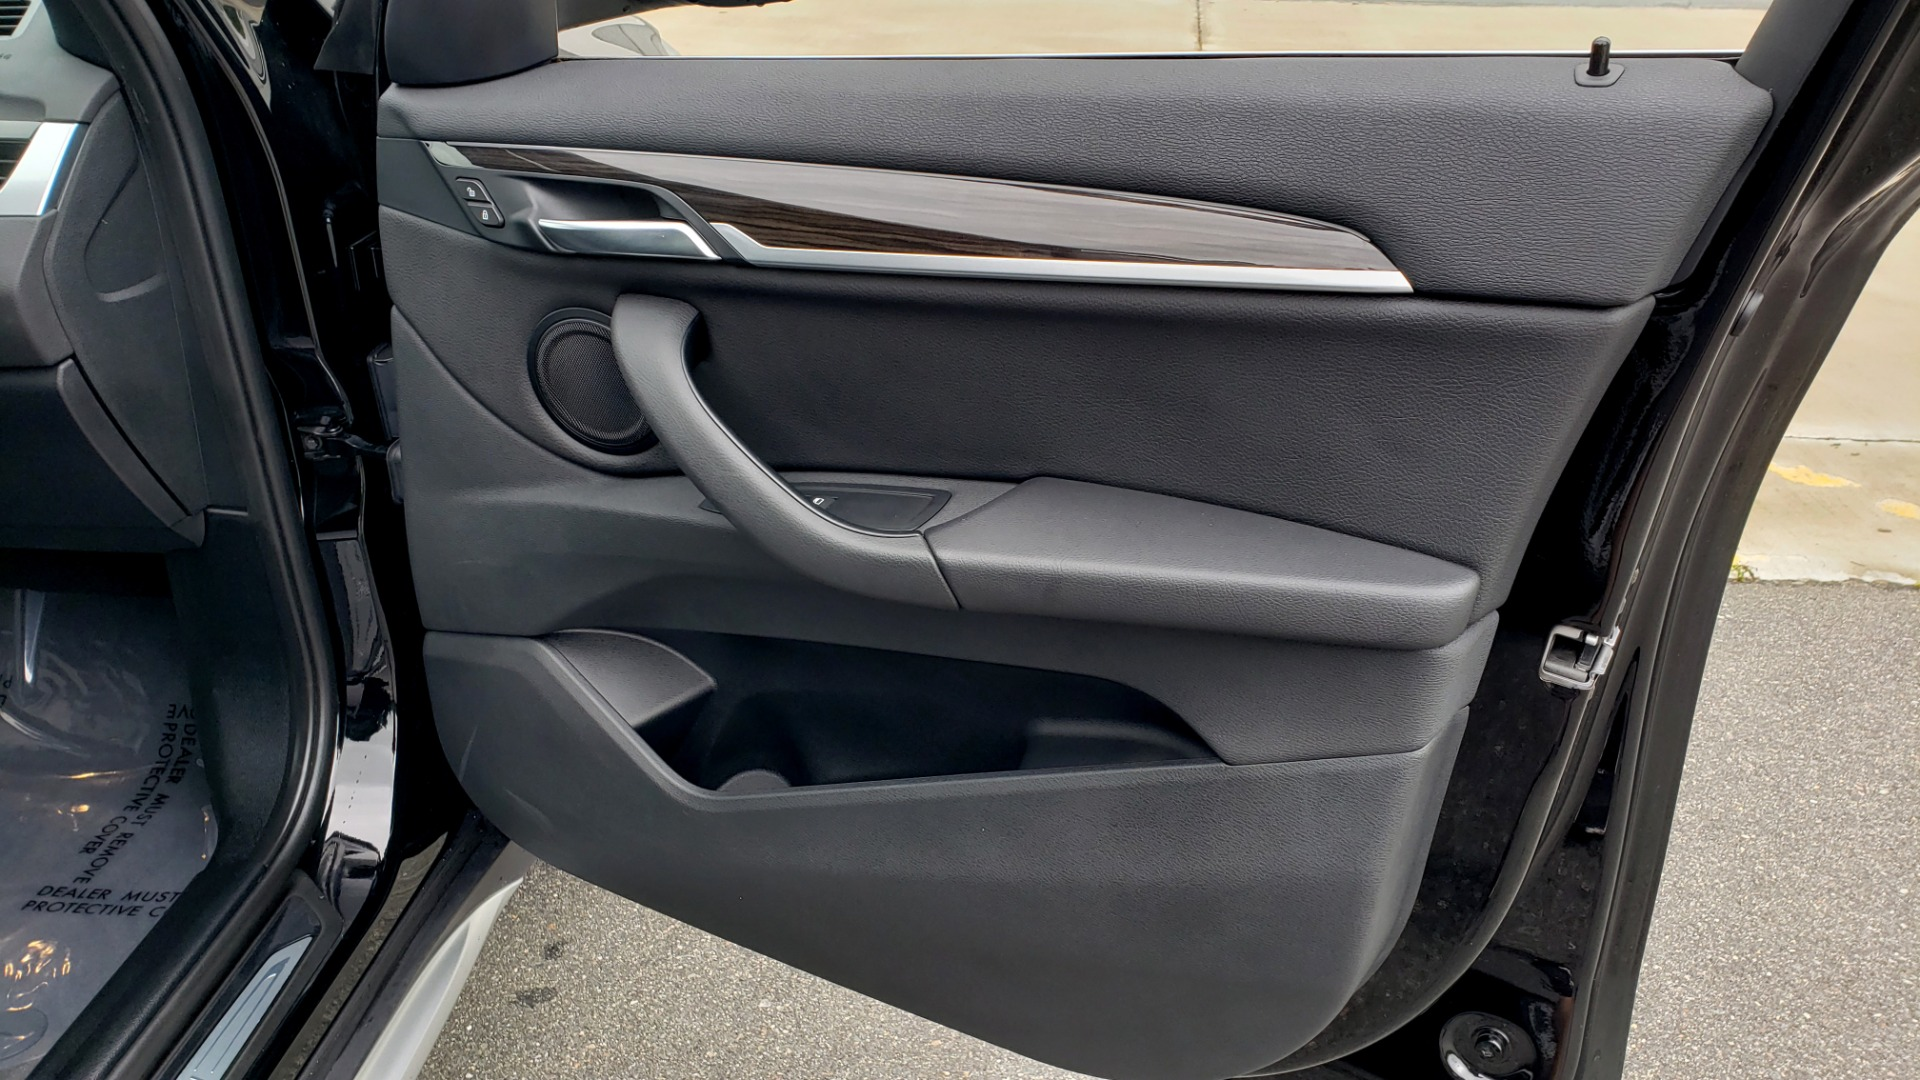 Used 2018 BMW X1 XDRIVE28I / CONV PKG / NAV / HTD STS / PANO-ROOF / REARVIEW for sale $30,995 at Formula Imports in Charlotte NC 28227 66